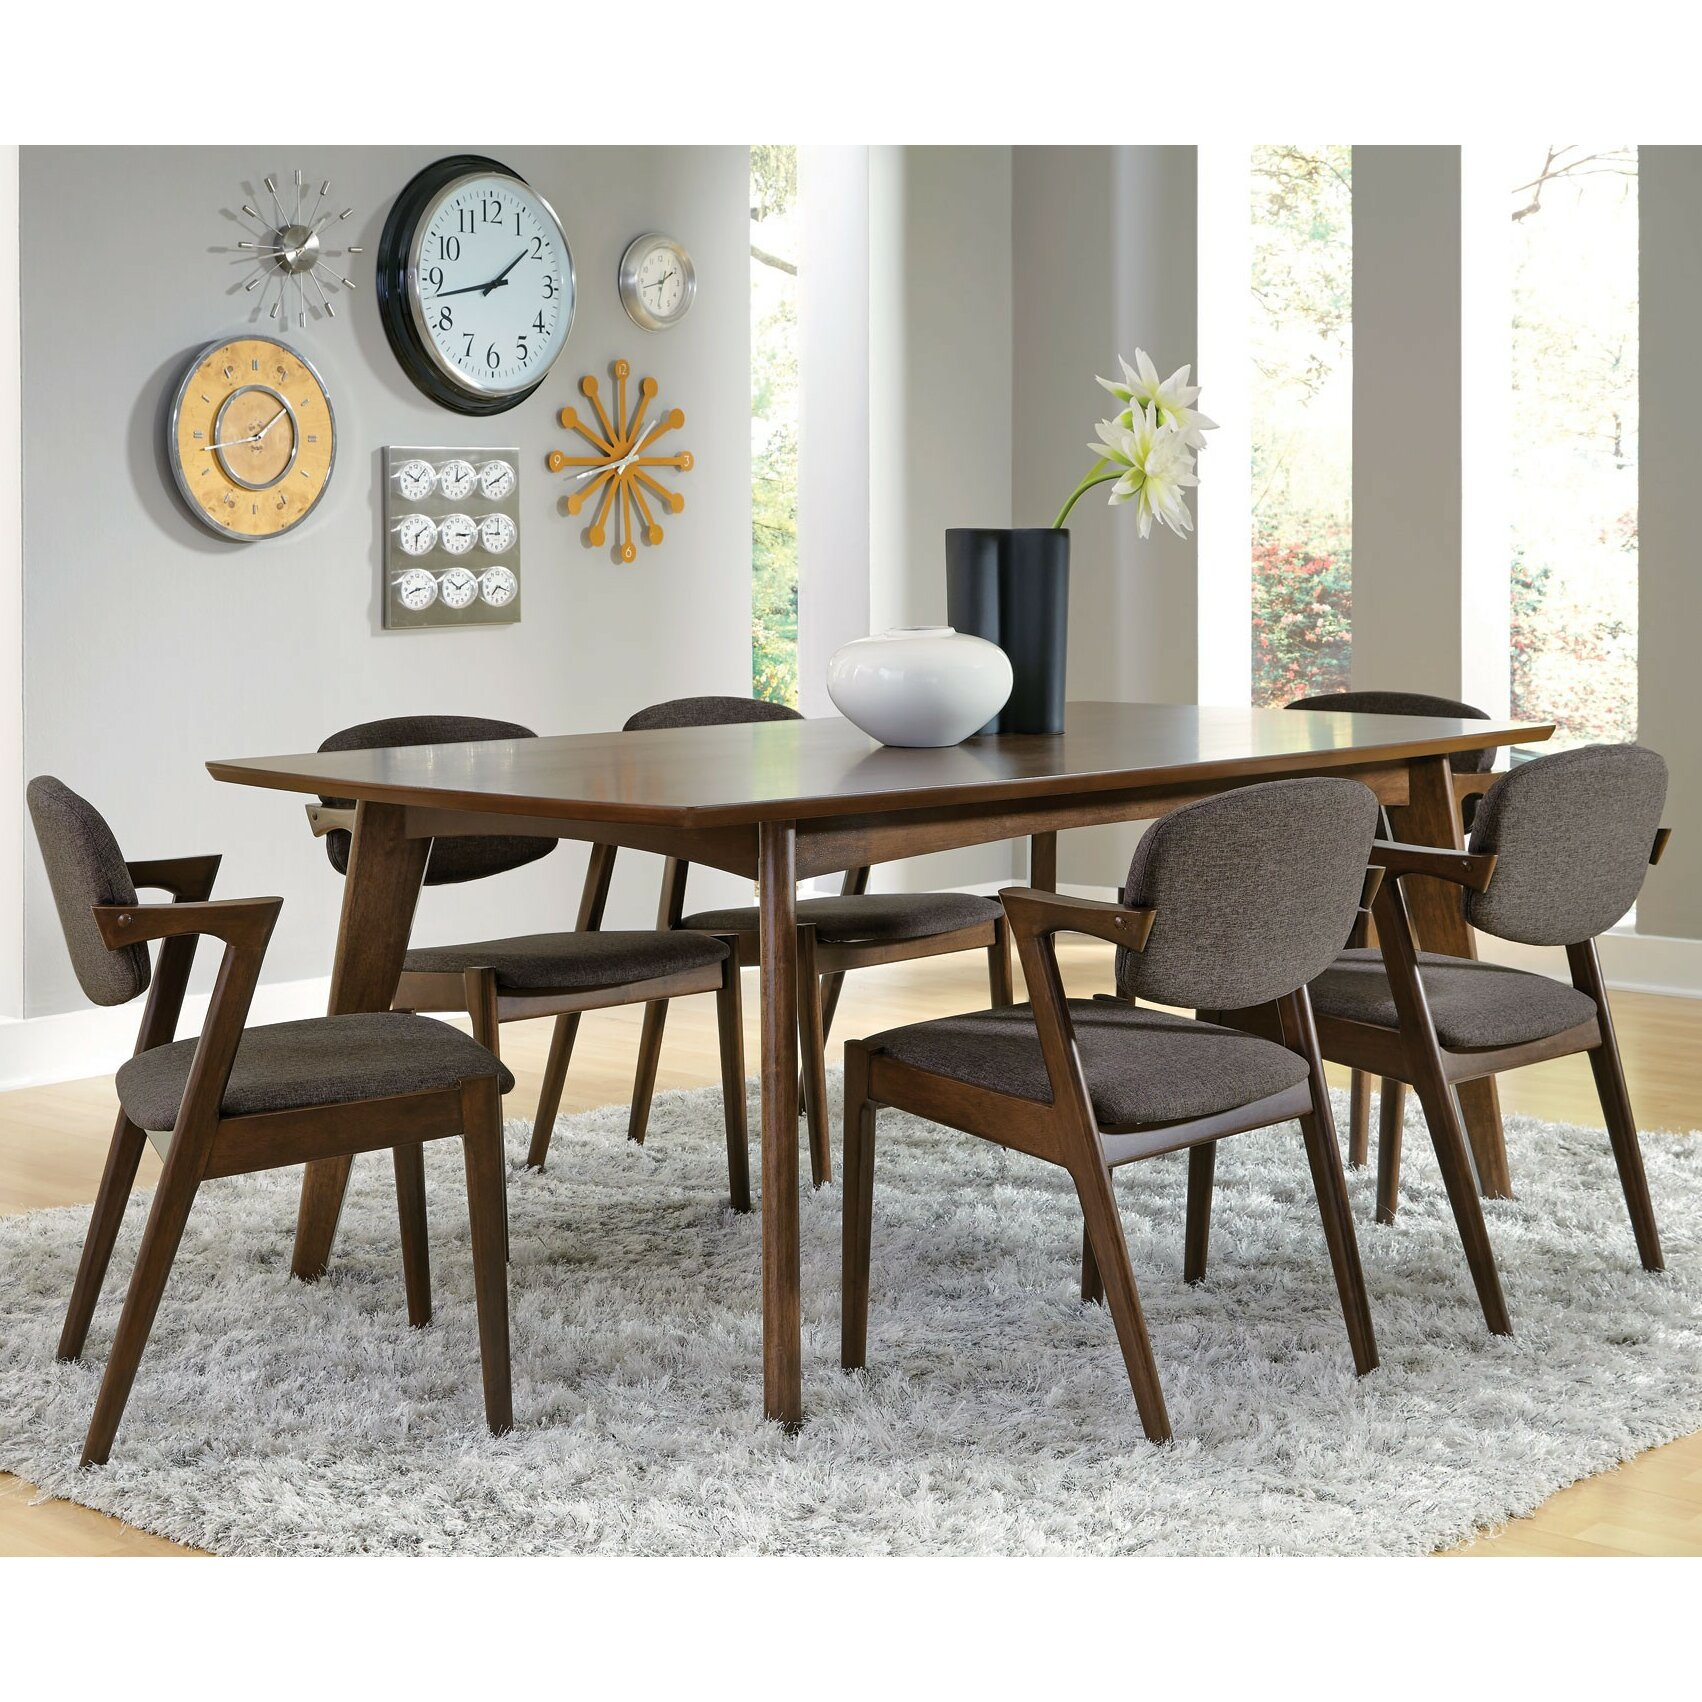 Dinning Set: Infini Furnishings Frederik 7 Piece Dining Set & Reviews